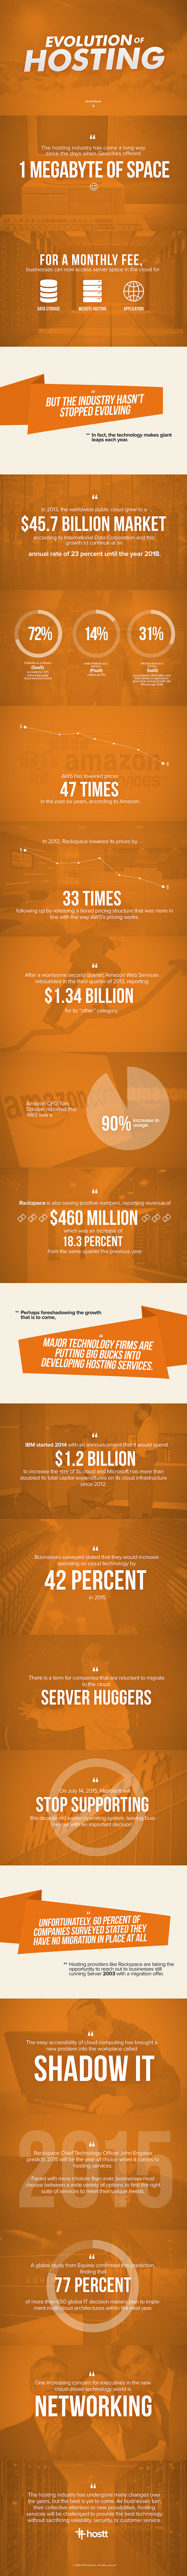 Evolution of hosting - infographic